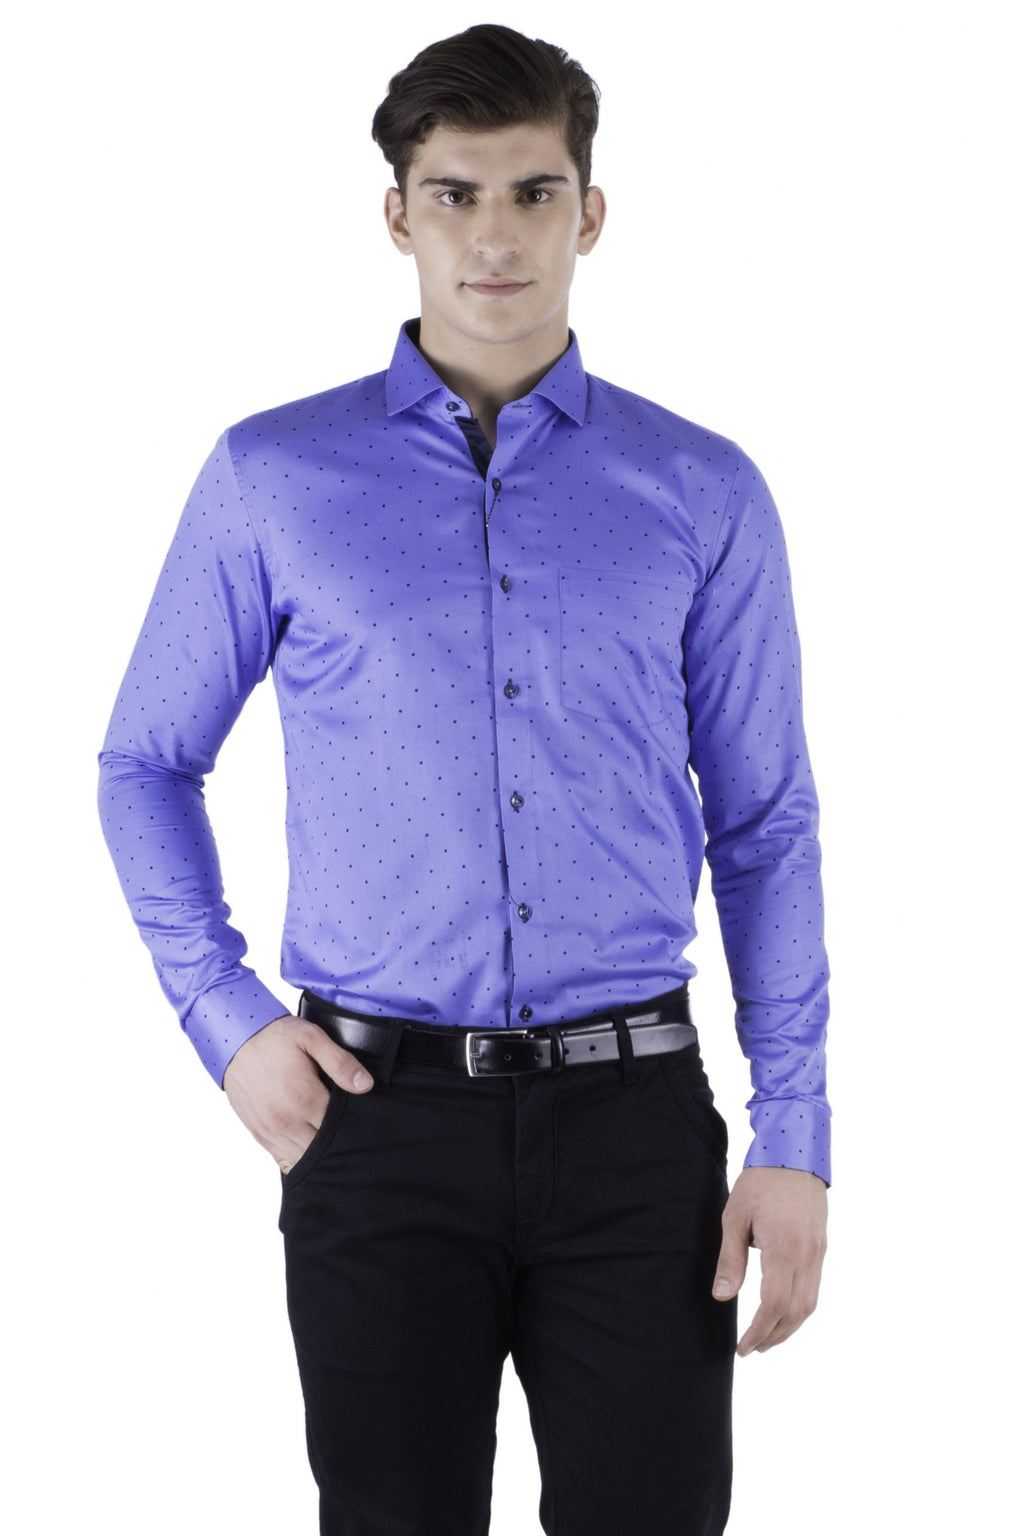 Hoffmen Men's Self Design Party Shirt PR6064